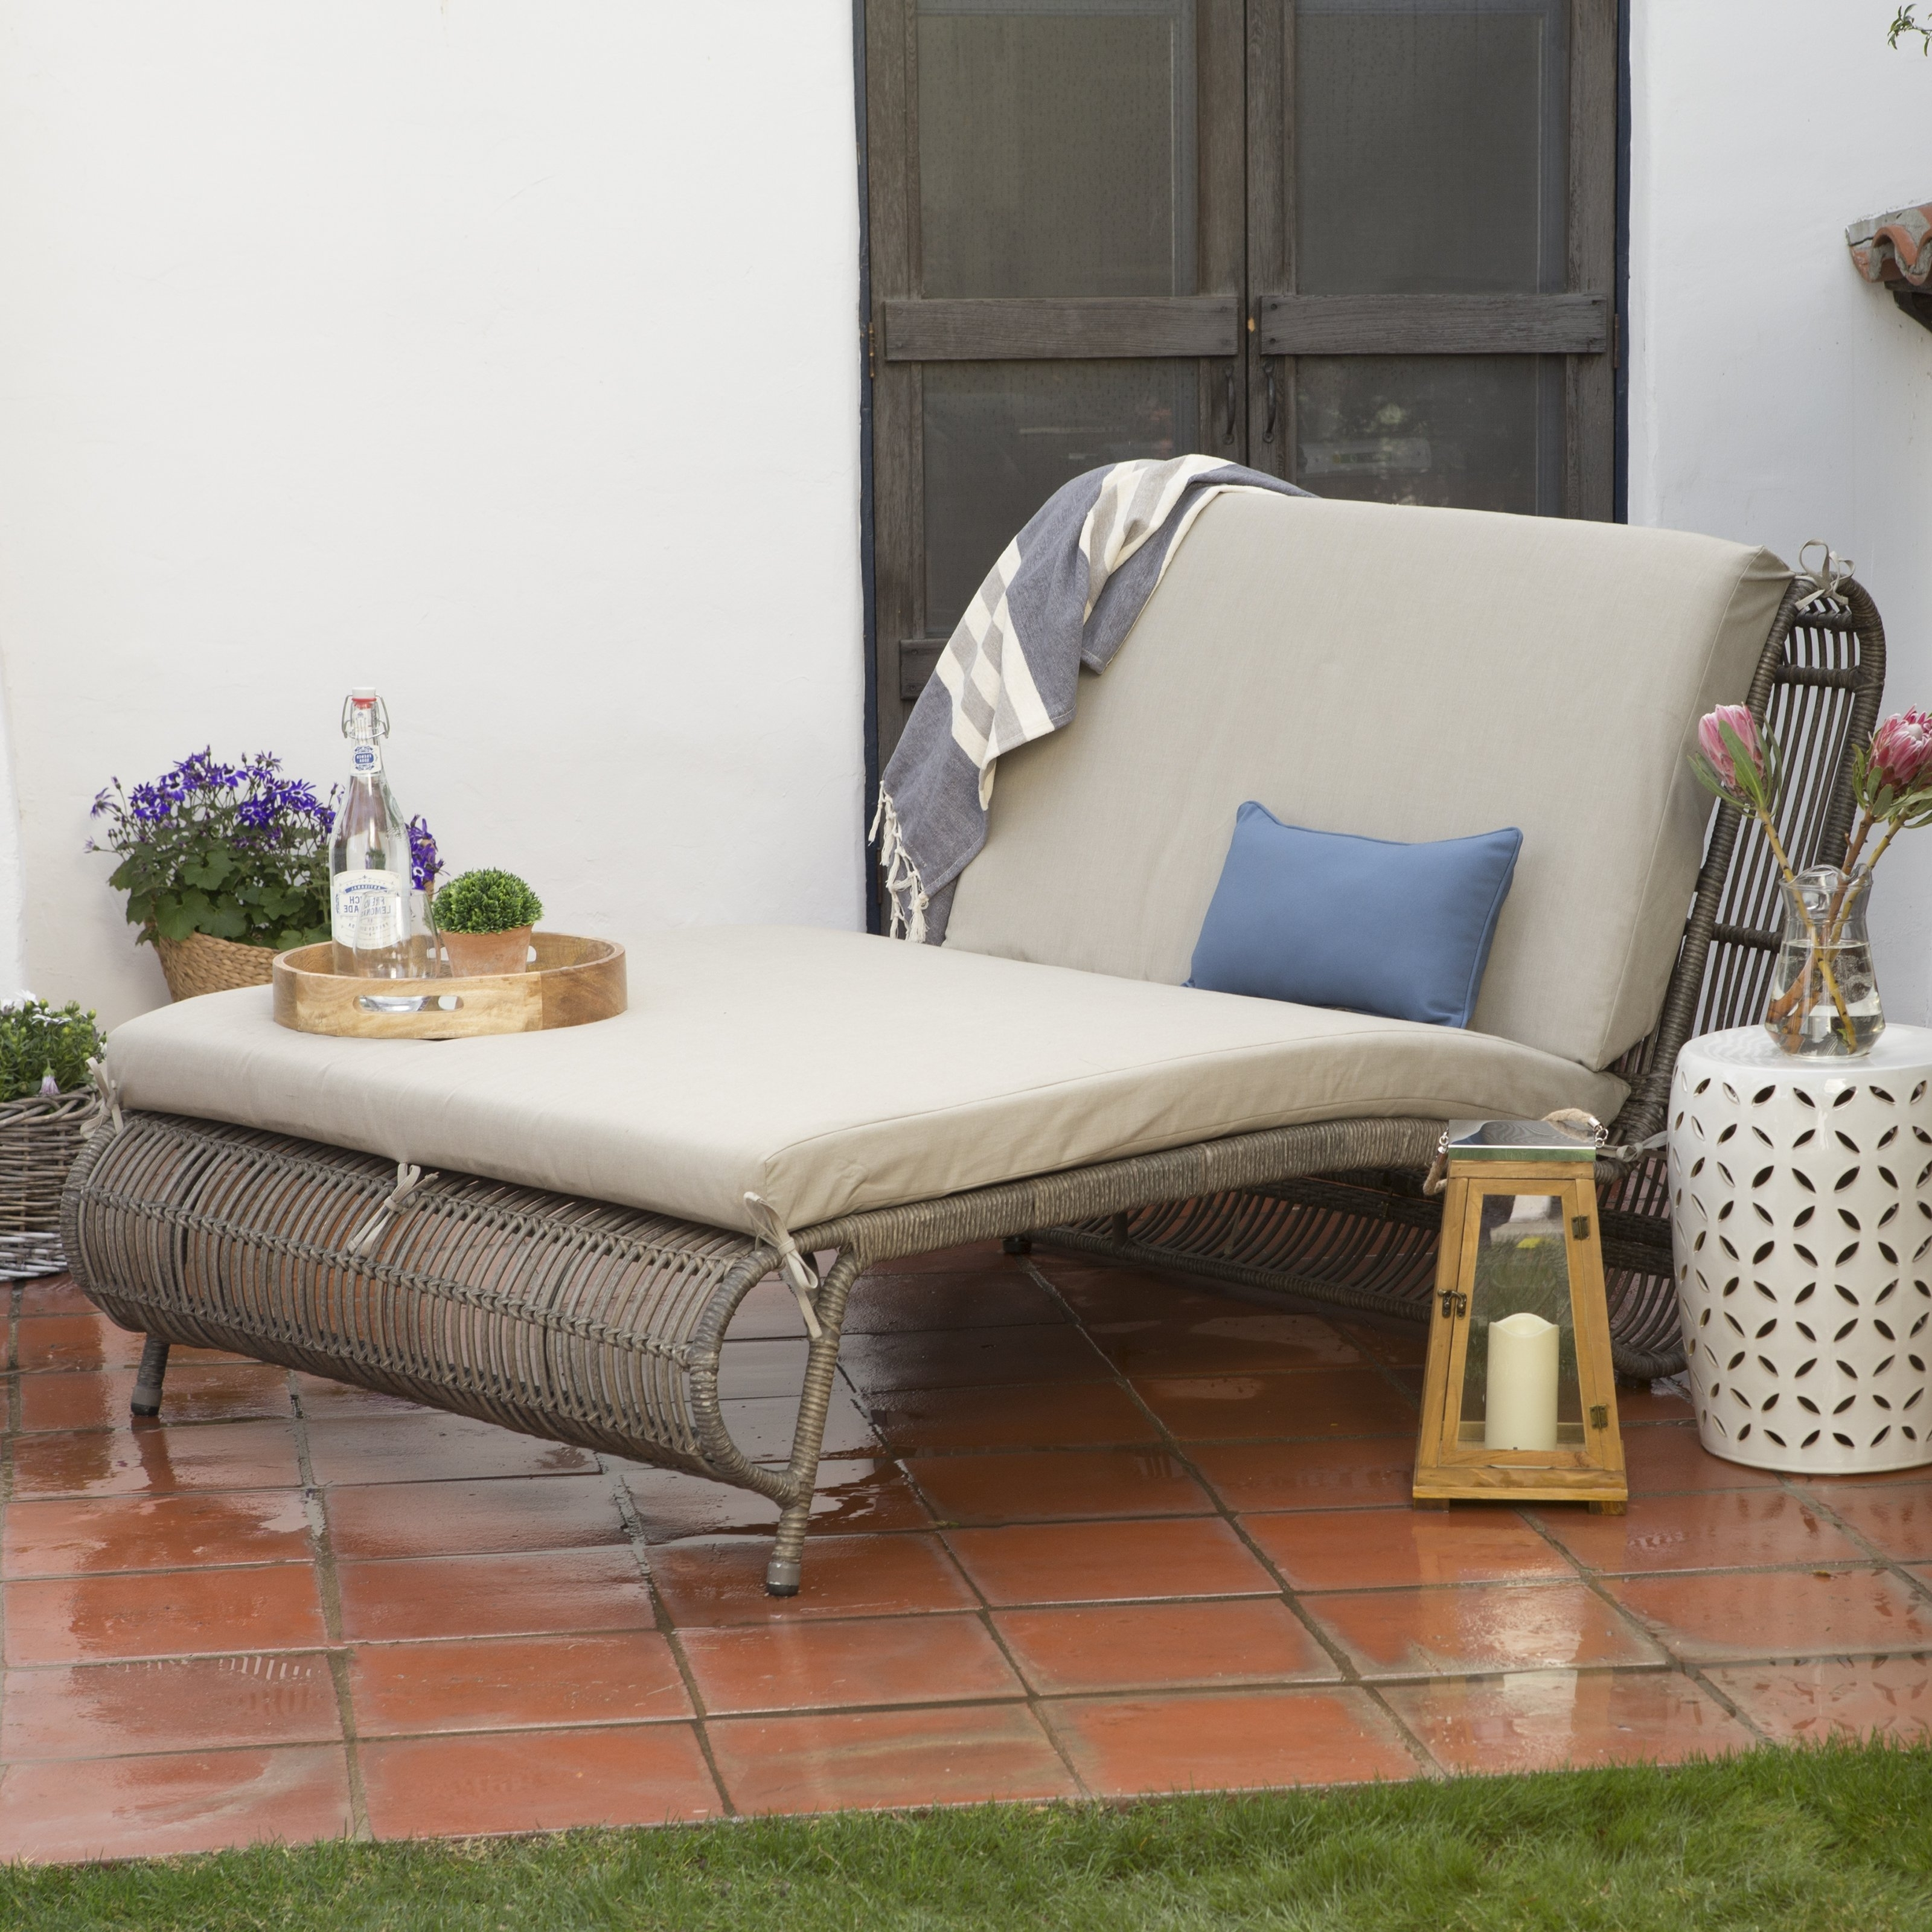 Hayneedle Throughout Patio Double Chaise Lounges (View 5 of 15)